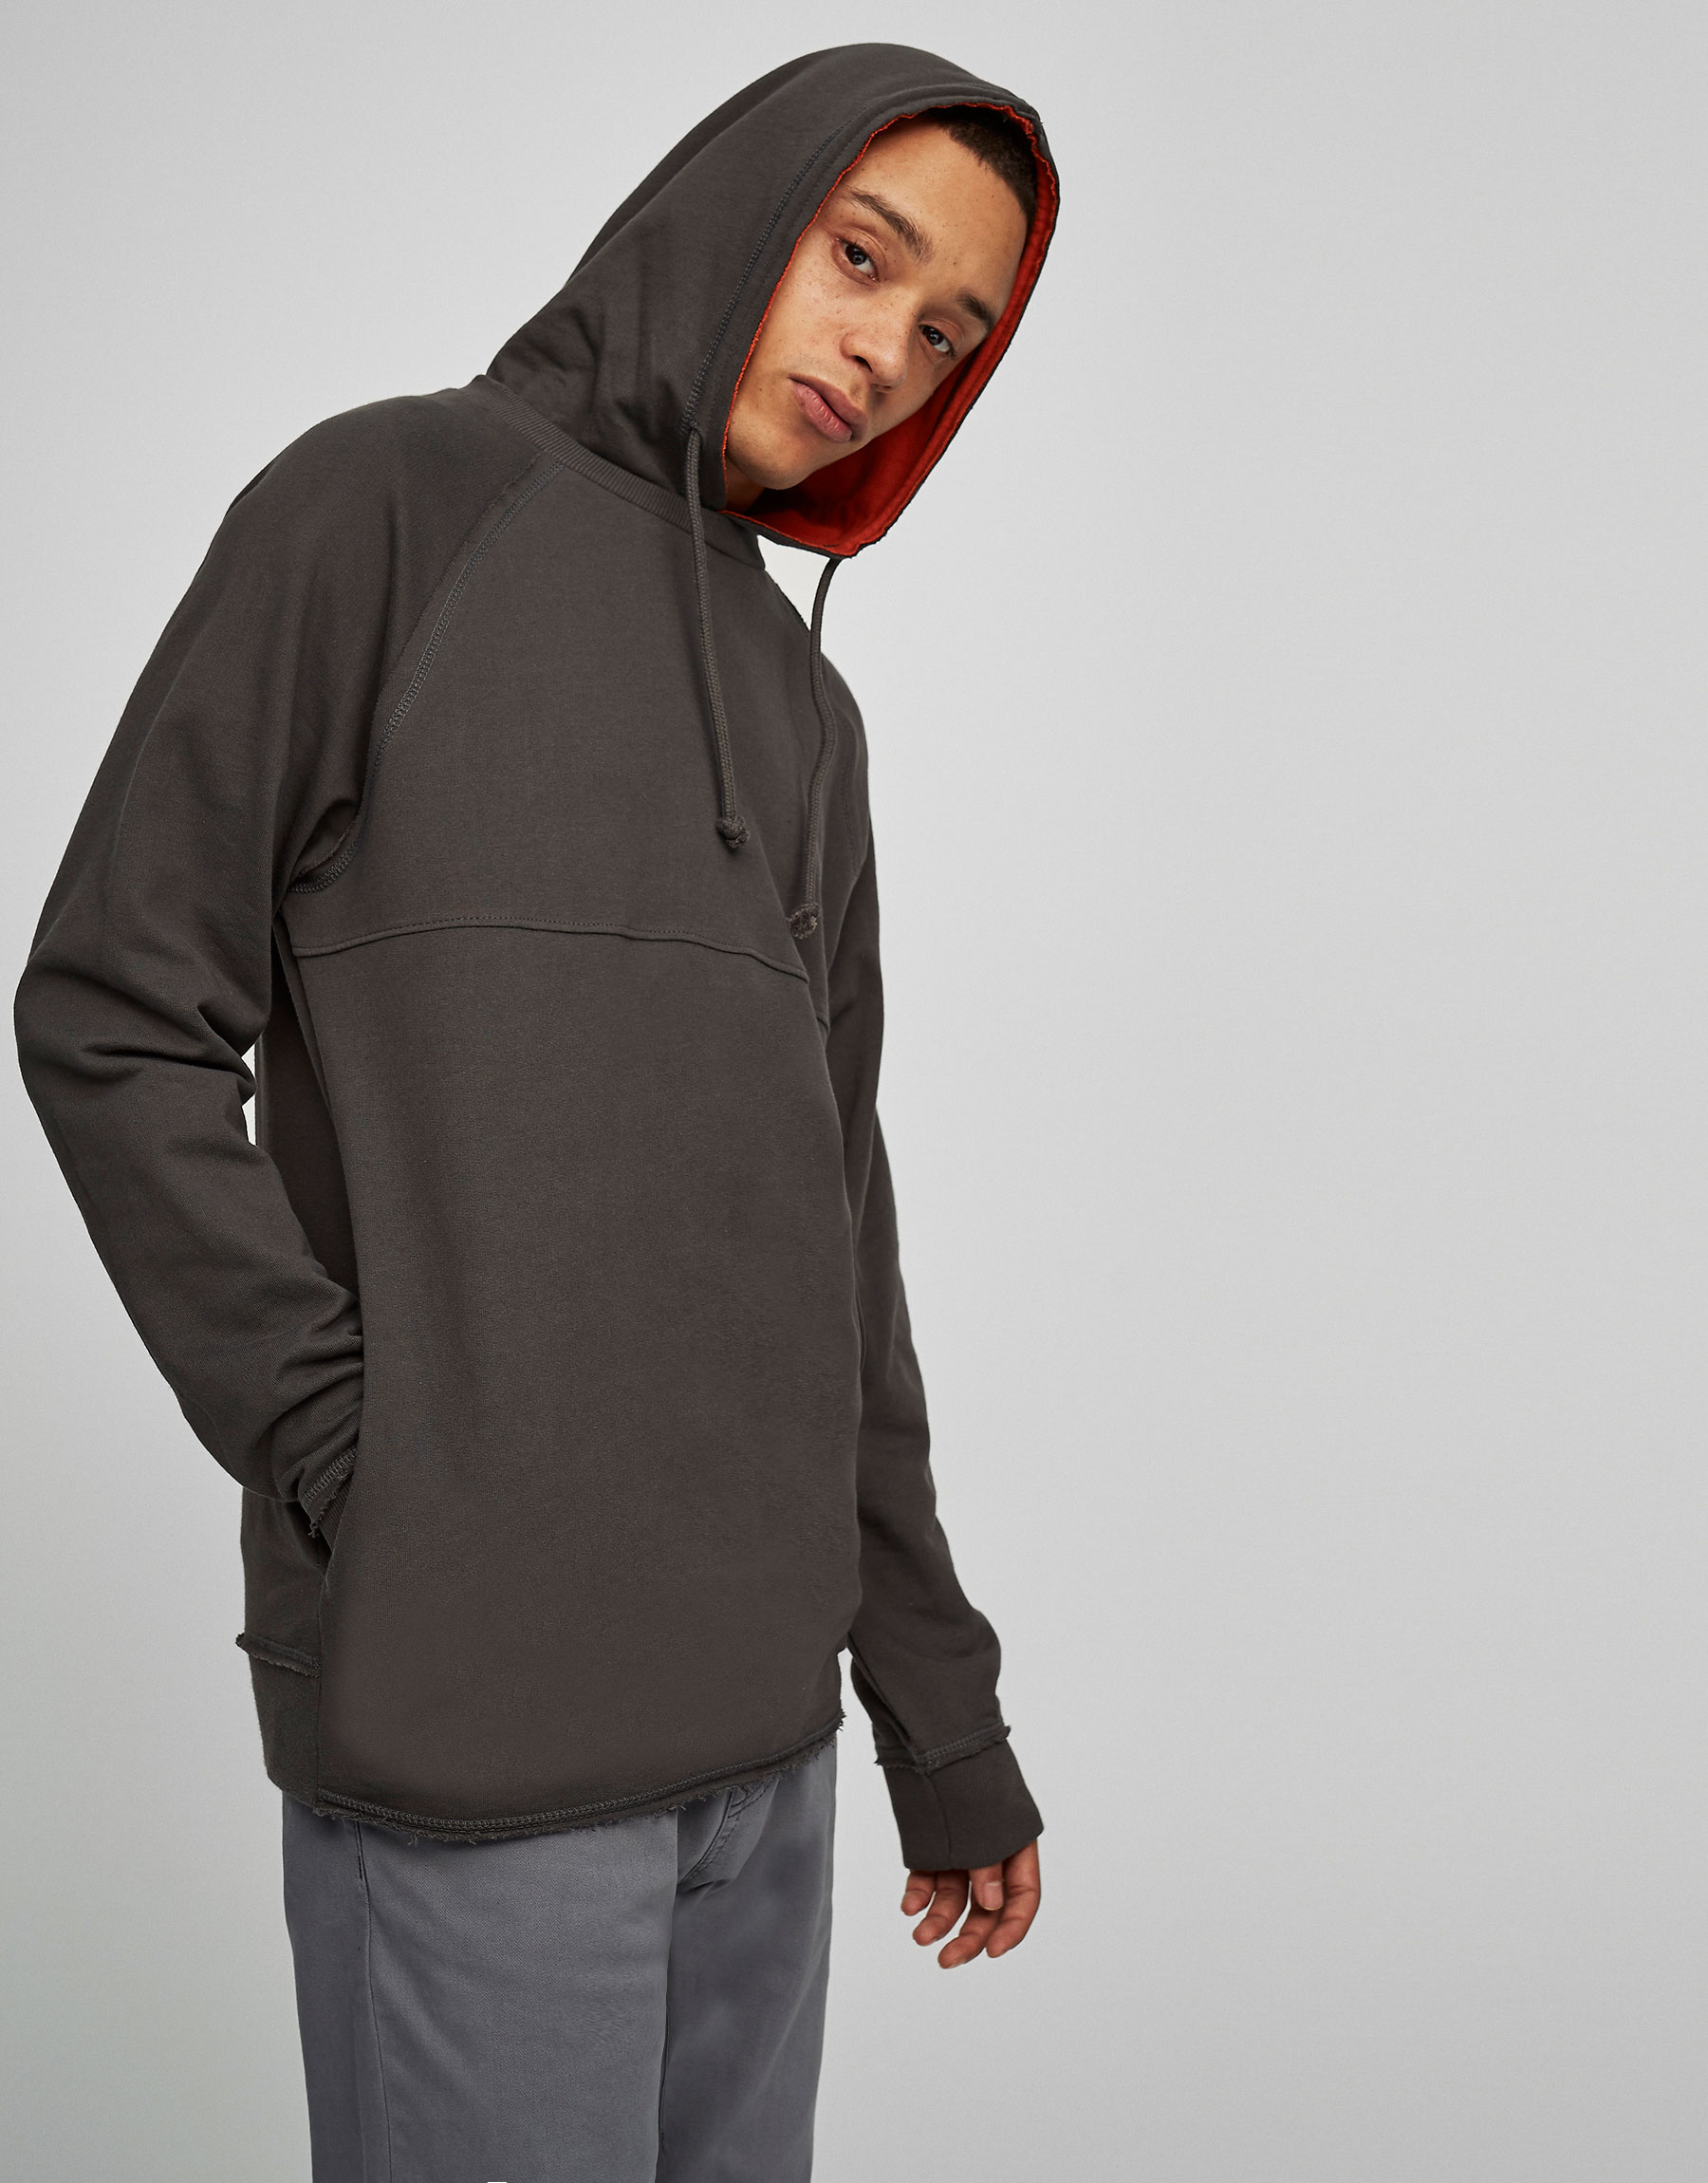 Hooded sweatshirt with contrasting orange